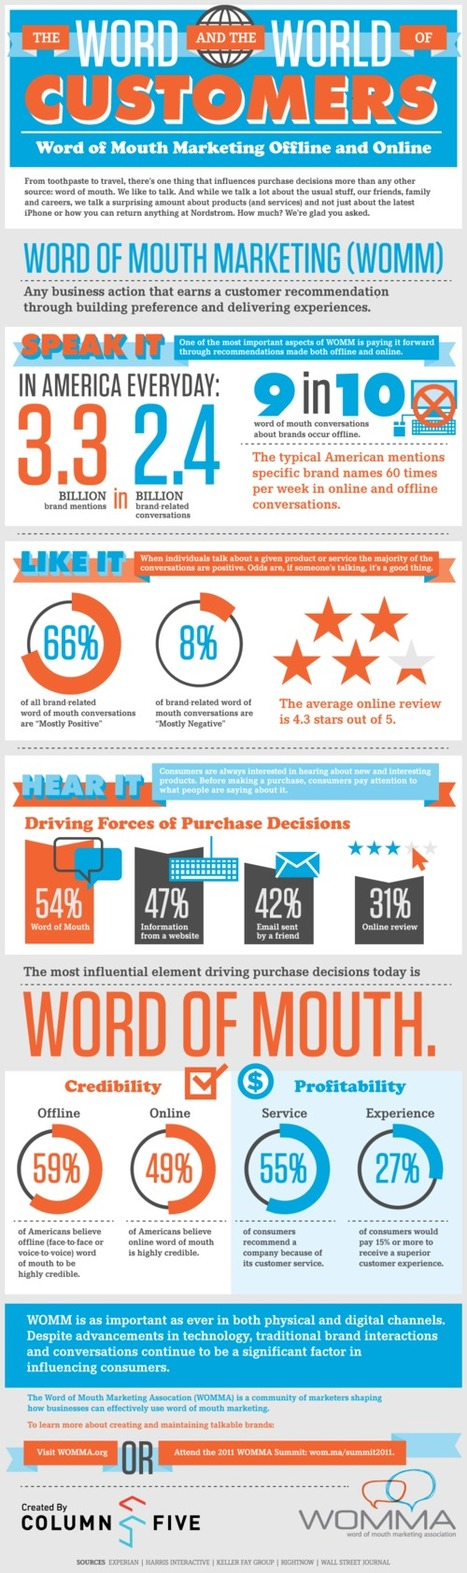 14 new statistics about word of mouth marketing: Church of the CustomerBlog | VIRAL GOSPEL | Scoop.it